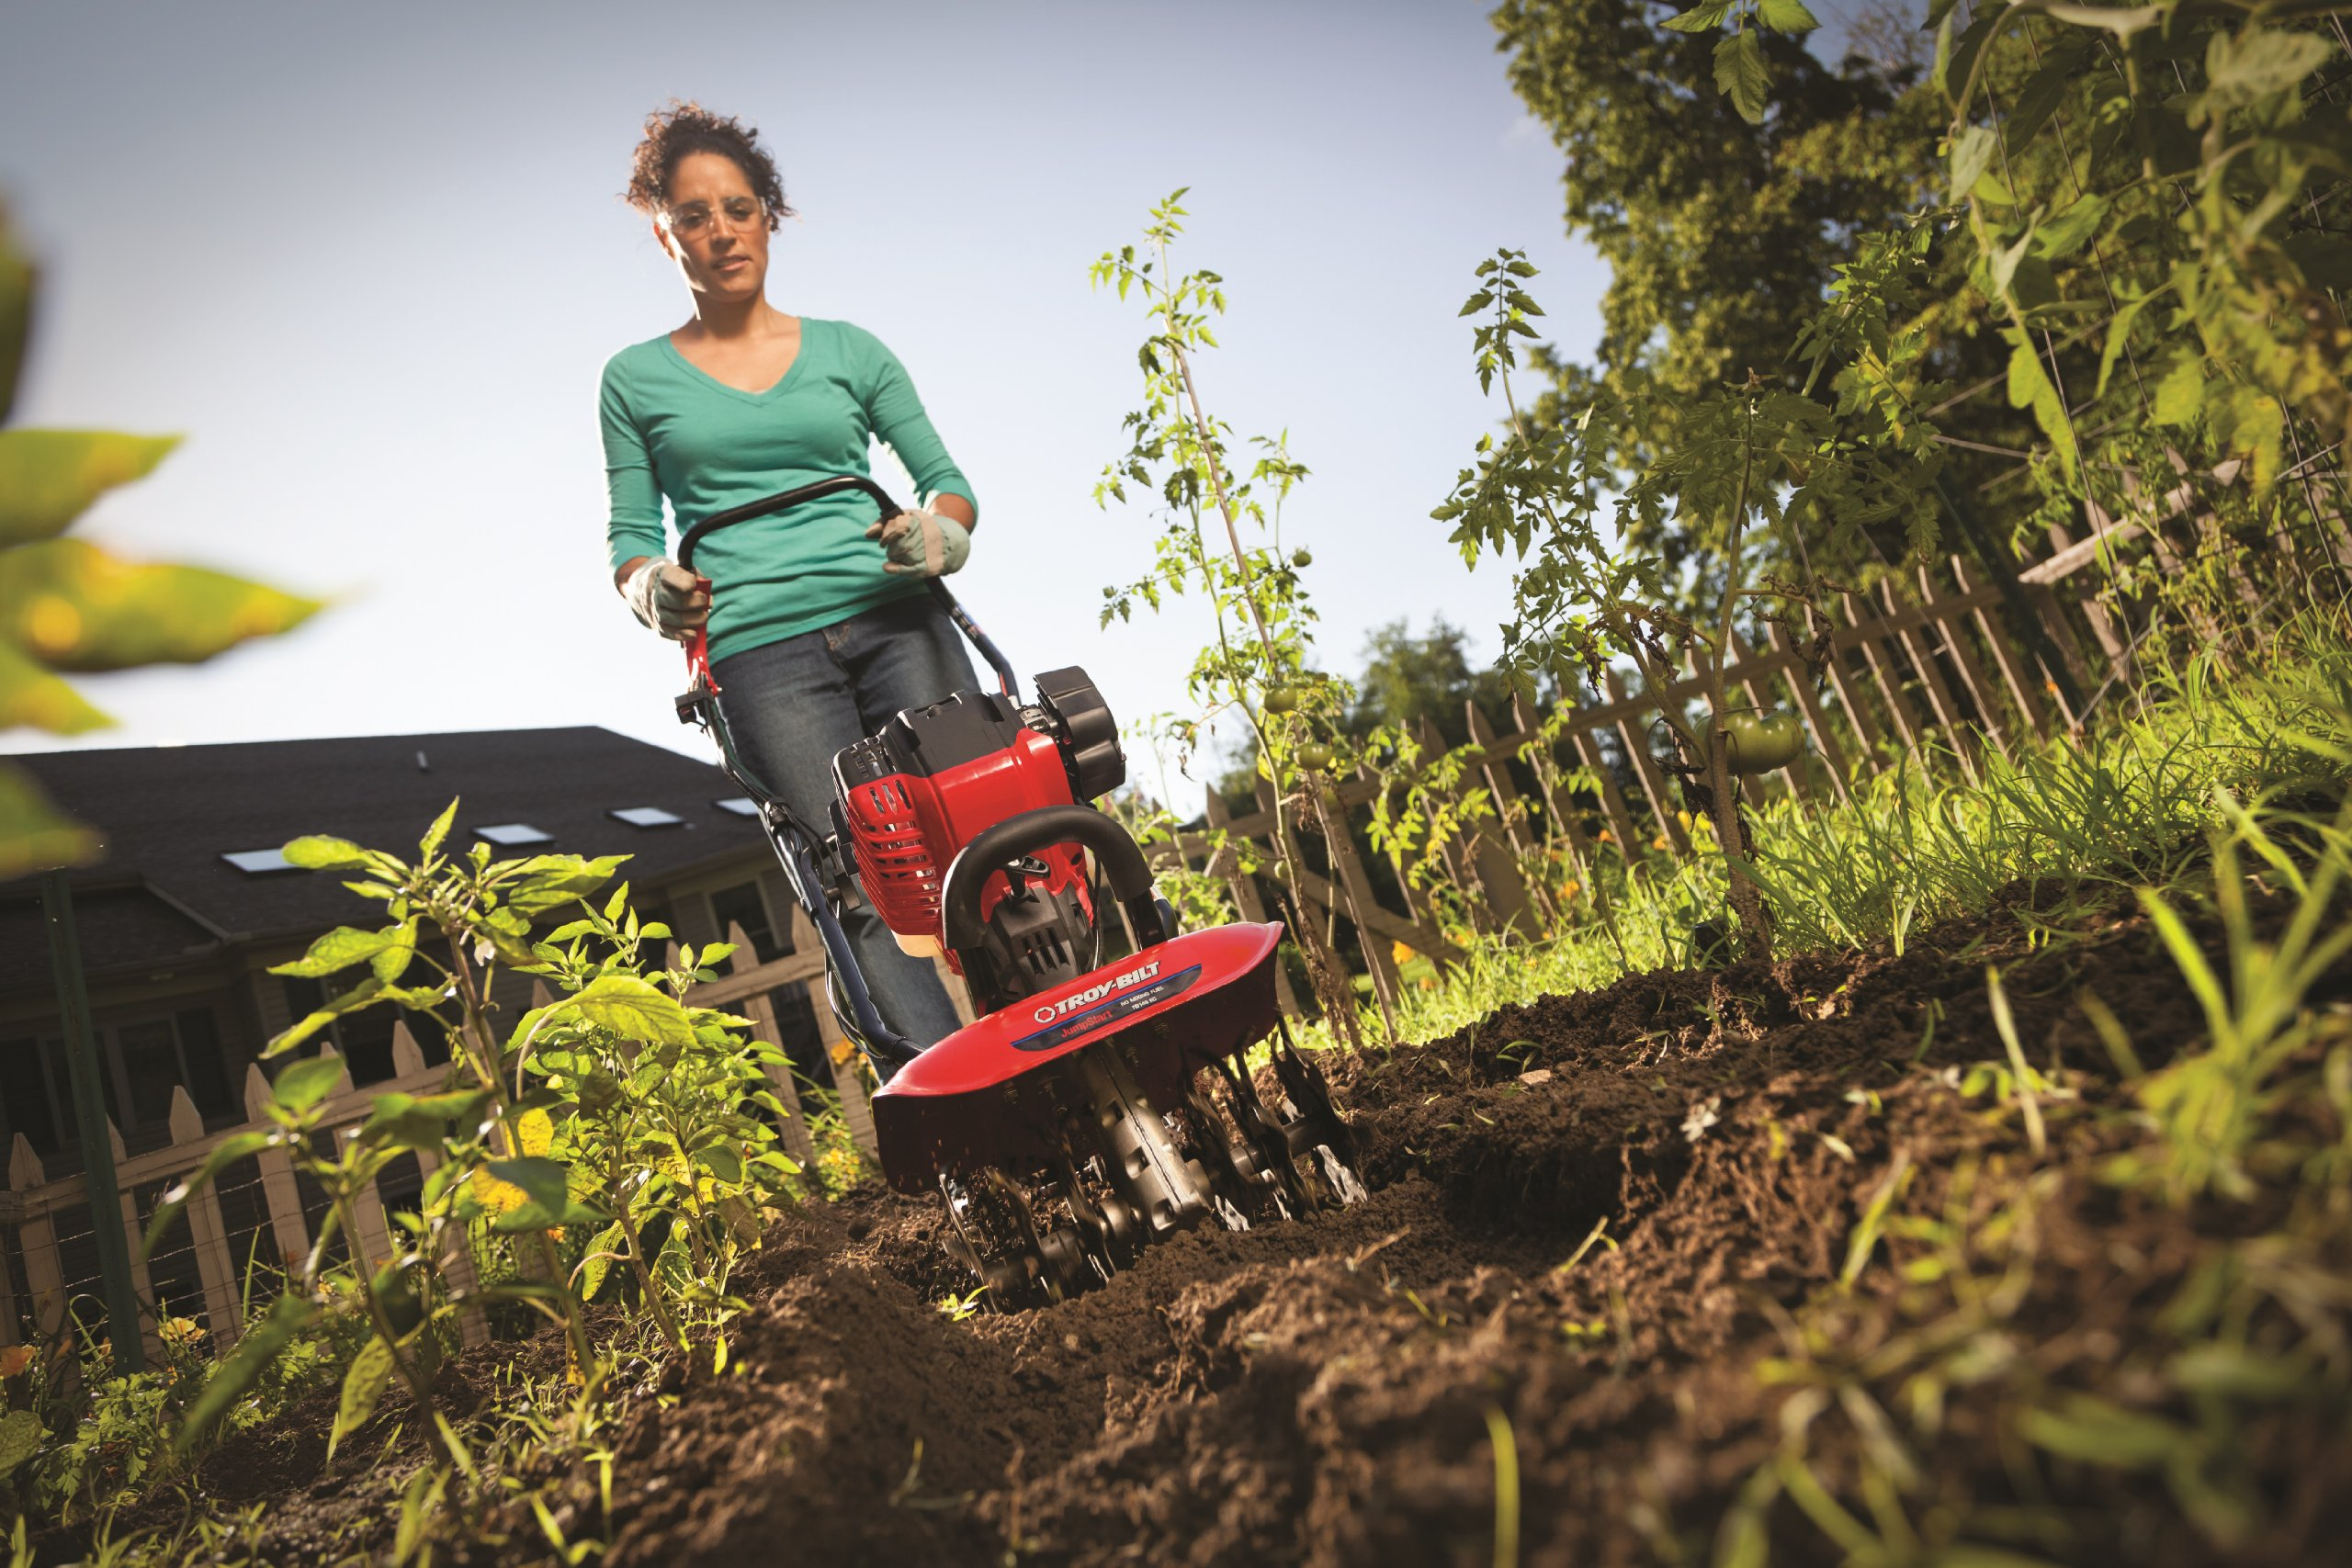 Troy-Bilt TB146 EC 29cc 4-Cycle Cultivator with JumpStart Technology by Troy-Bilt (Image #3)